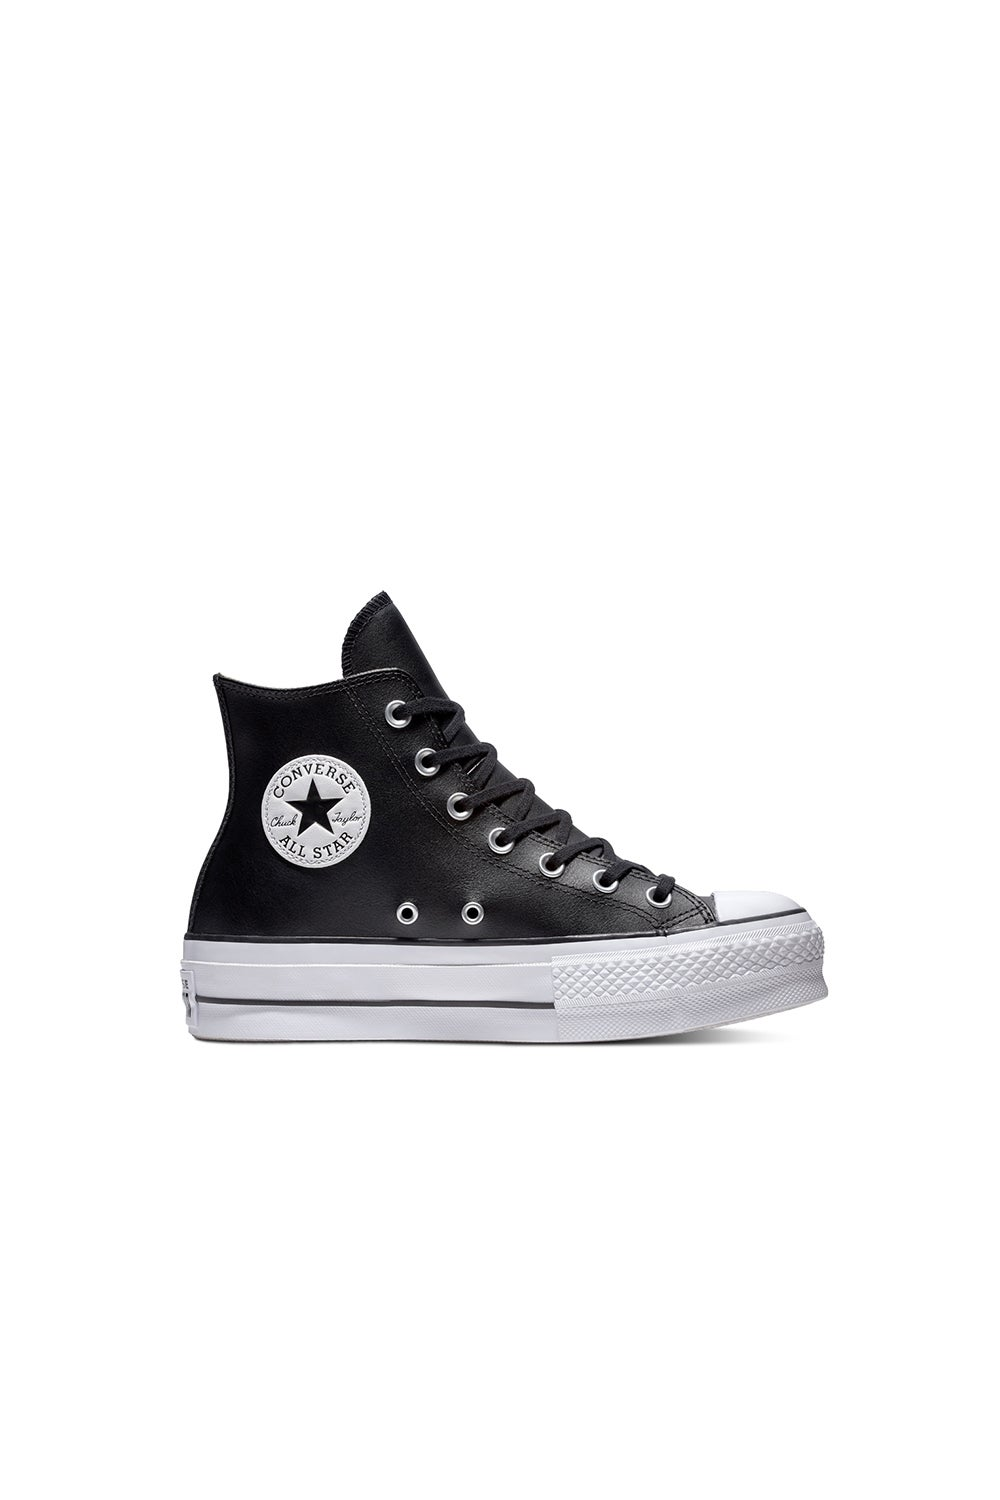 Converse Chuck Taylor All Star Lift Clean Leather High Top Black/Black/White